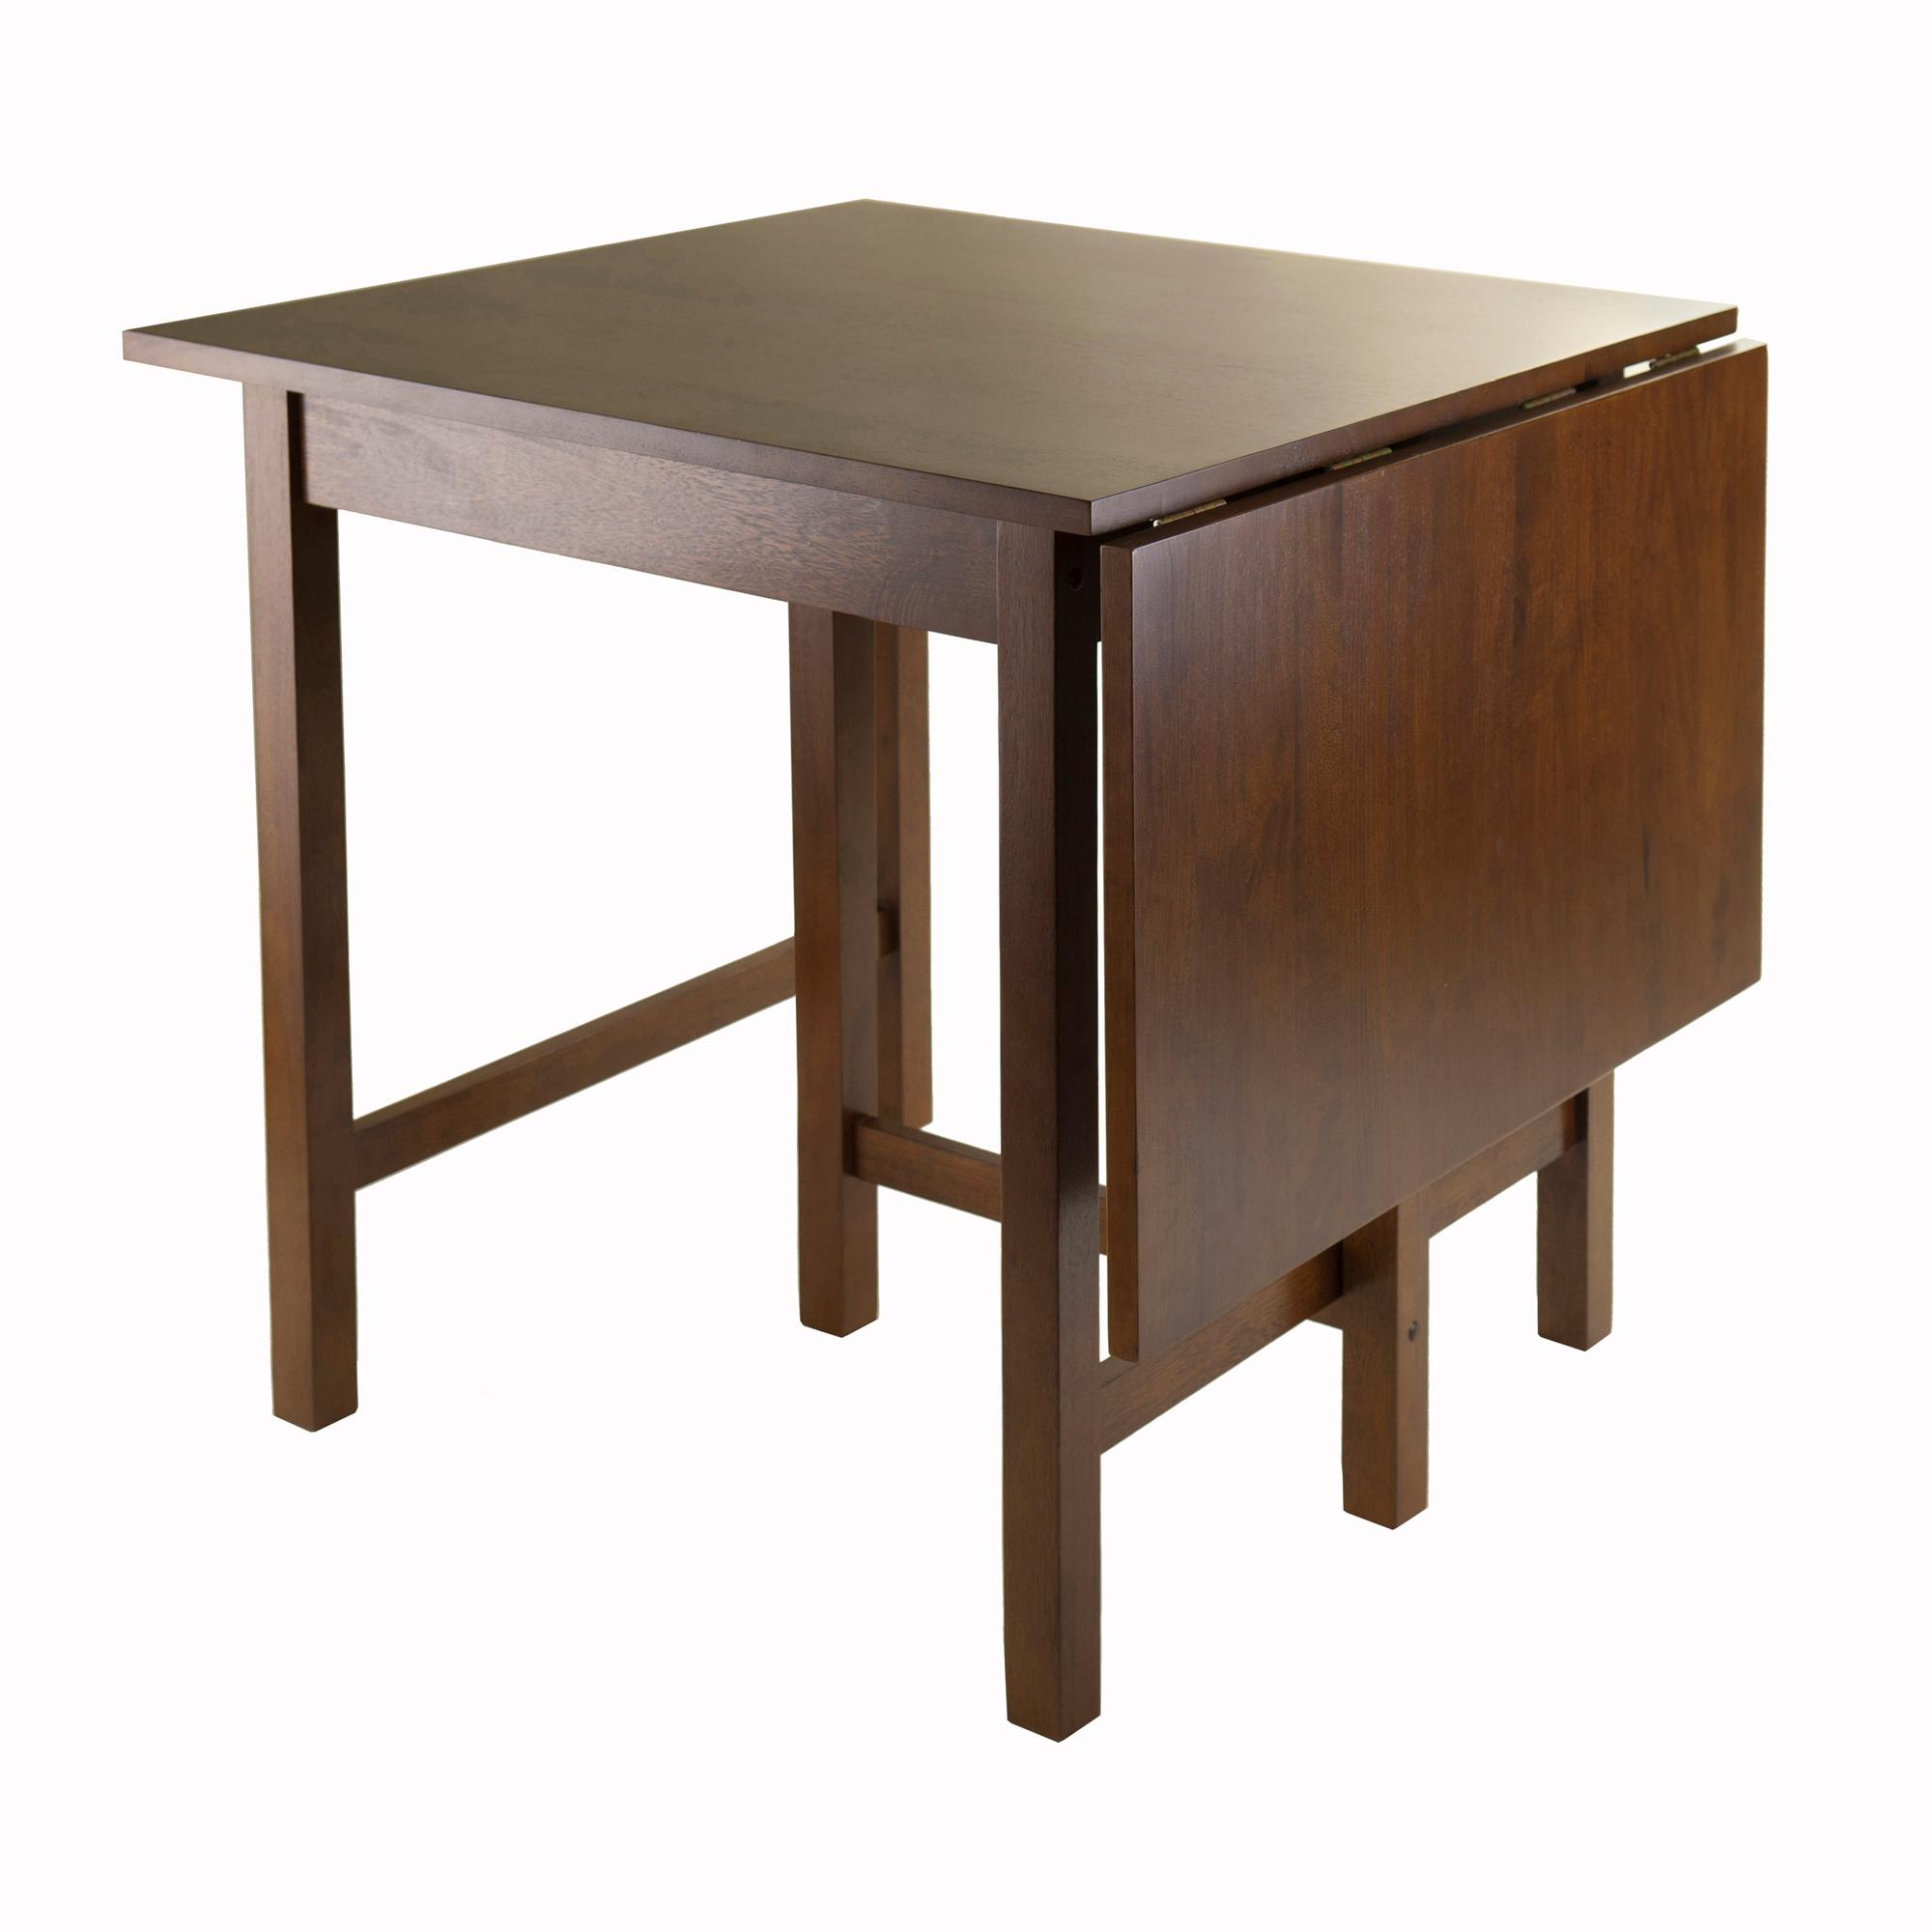 Winsome lynden drop leaf dining table tables for Restaurant tables